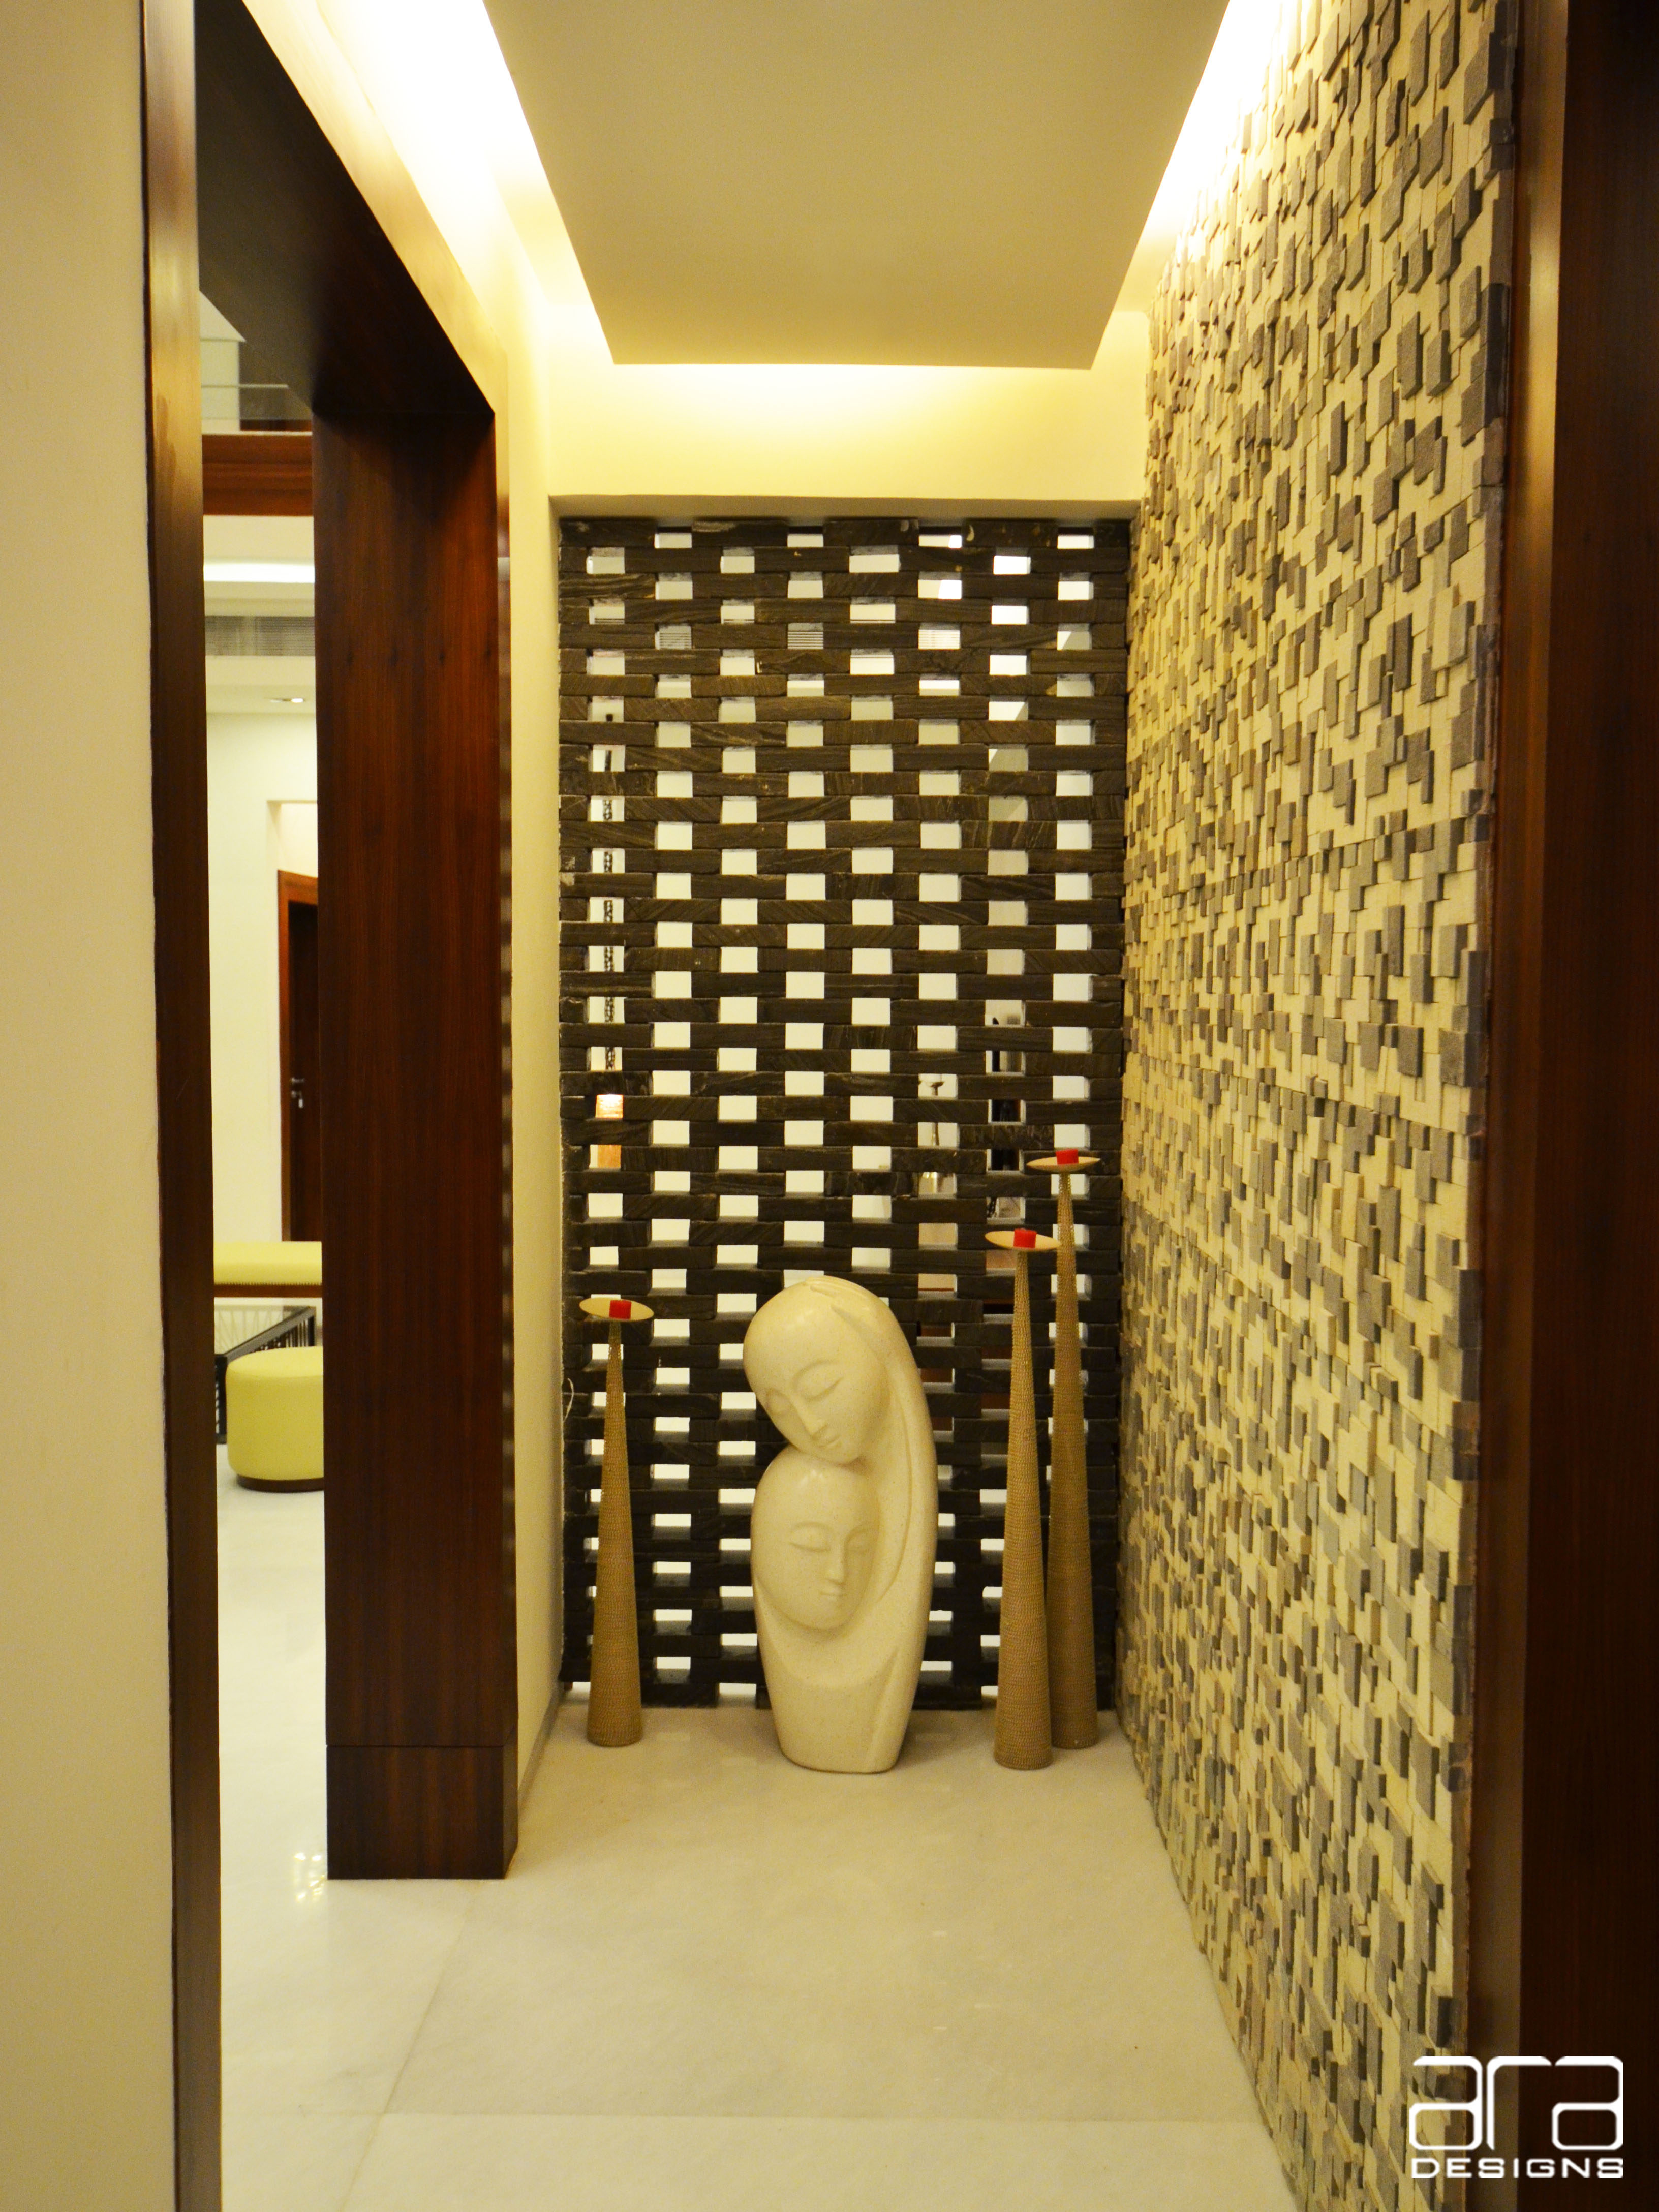 Good design is what works the best architect amey for Home passage designs